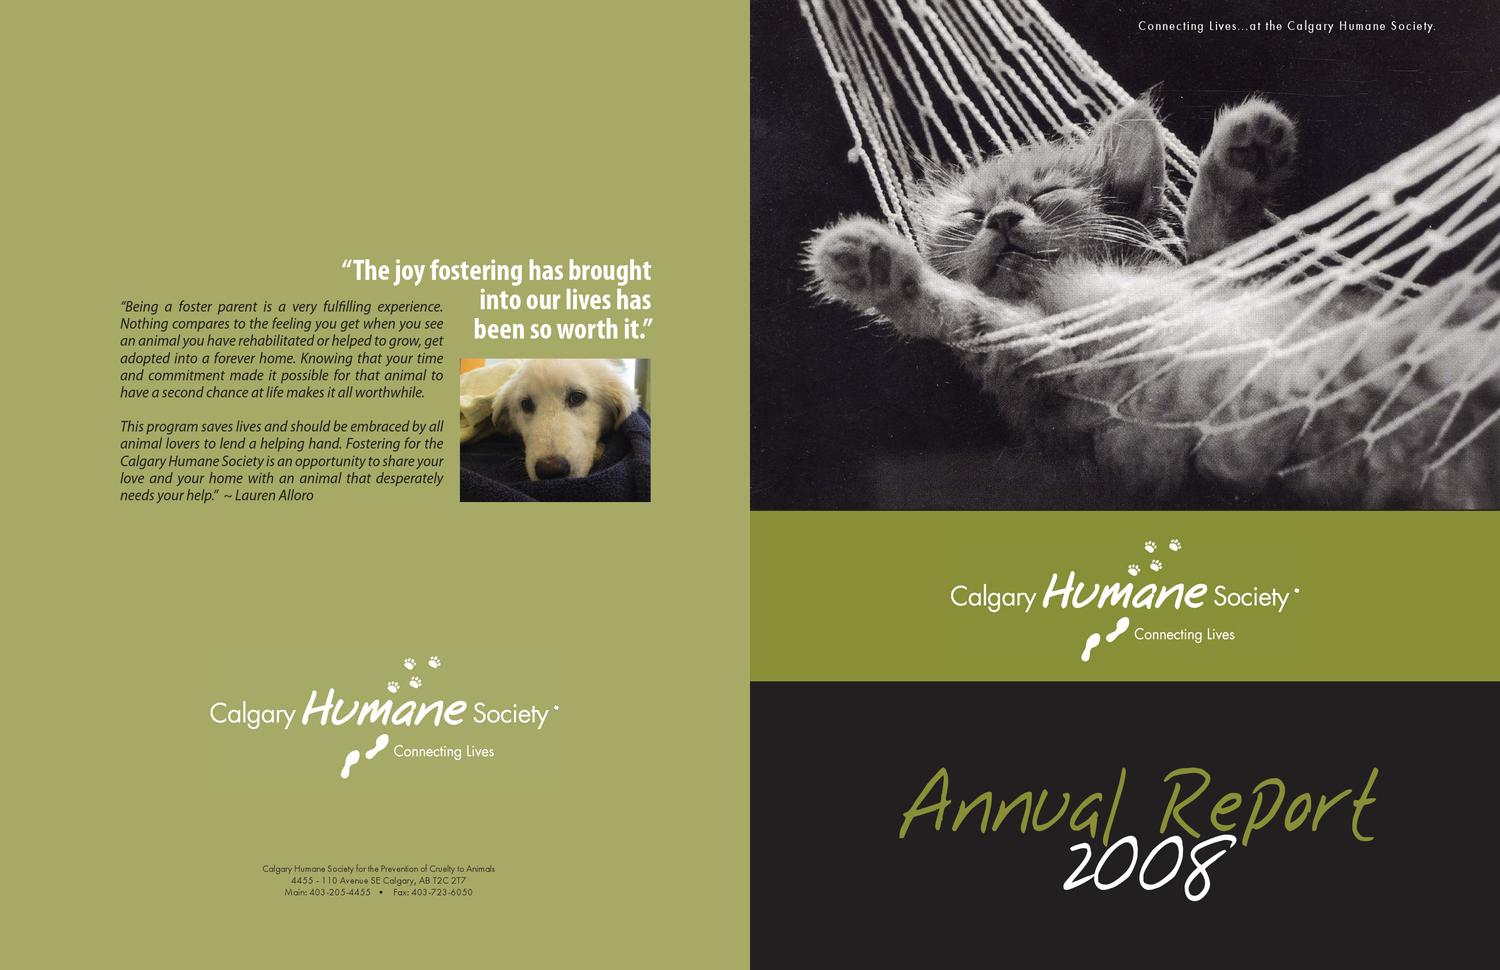 2008 CHS Annual Report by Calgary Humane Society - issuu